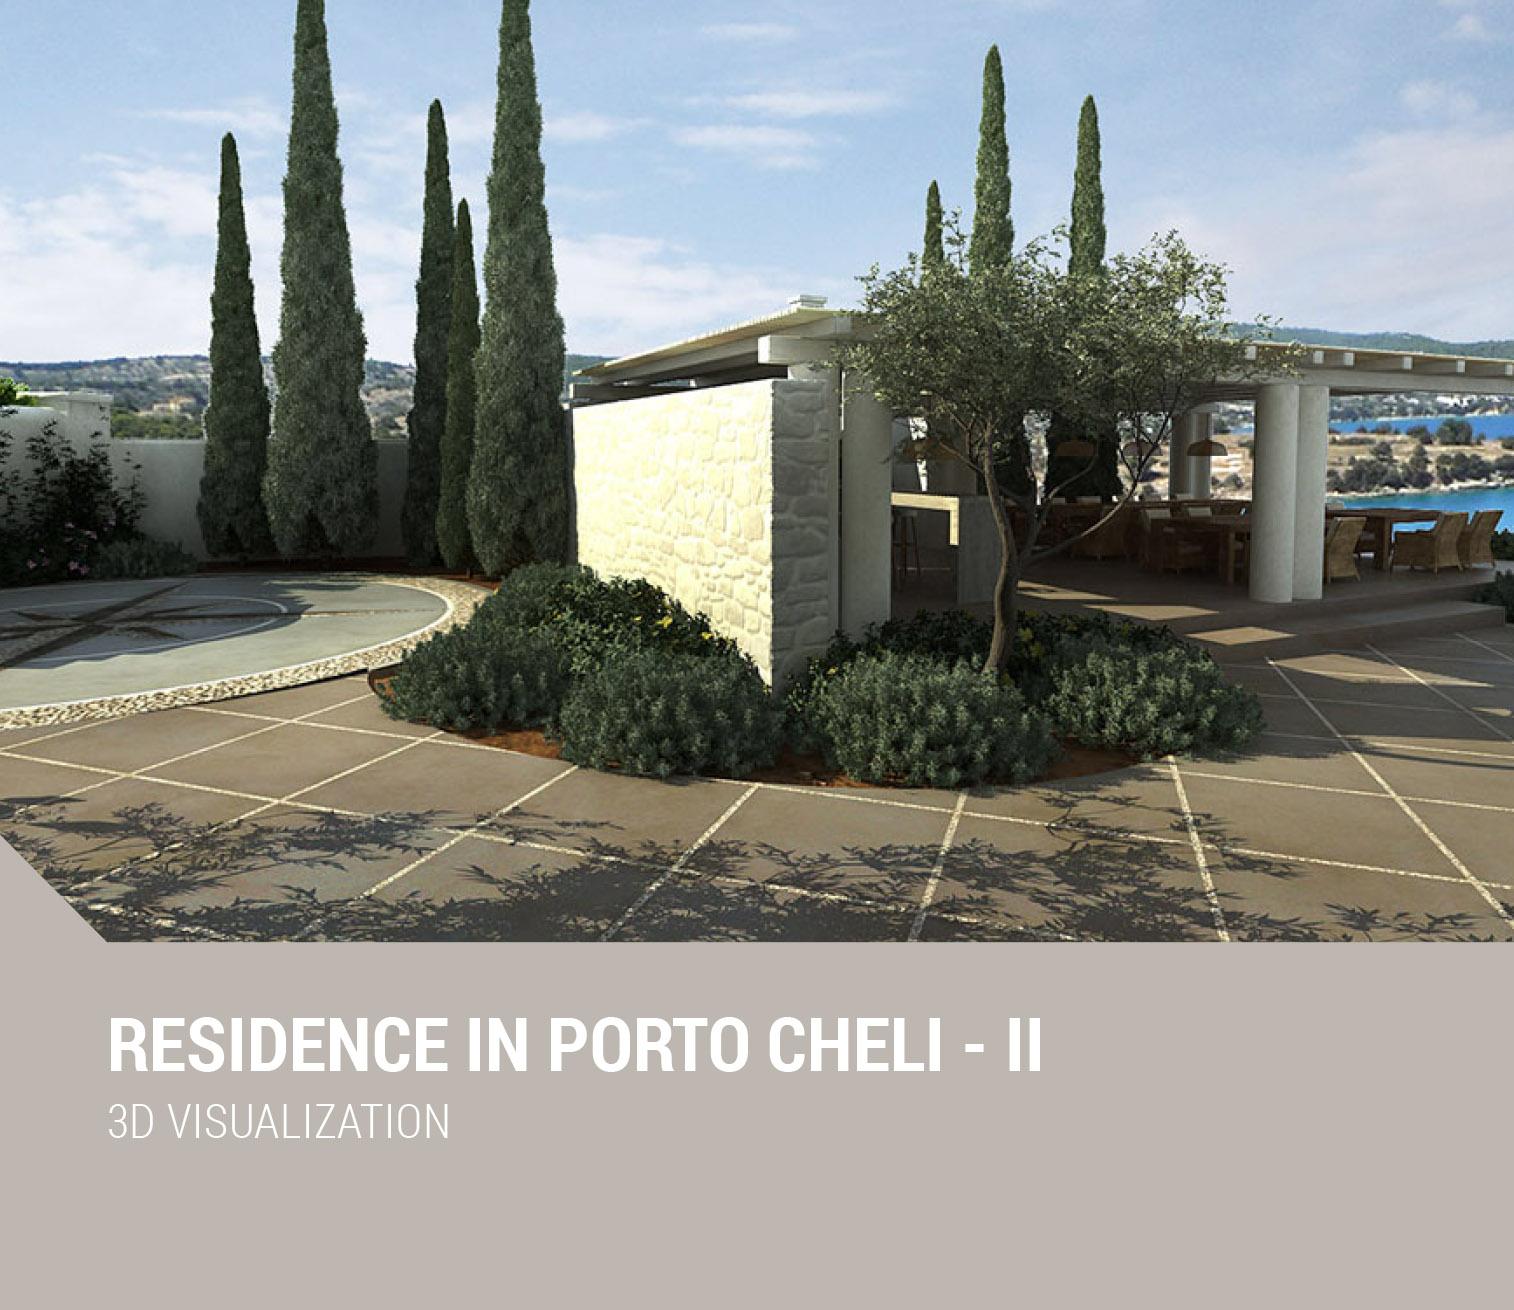 Schema Dimitra Chrona designer, creative director, architectural, 3D visualization, 3D Rendering, branding websites, digital, graphic design, interior design, real estate, luxury property, staging, museum, virtual, art, brochures, exhibitions, logotype, logo, Canada Quebec Montreal Athens Greece schema design porto cheli residence ii small.jpg